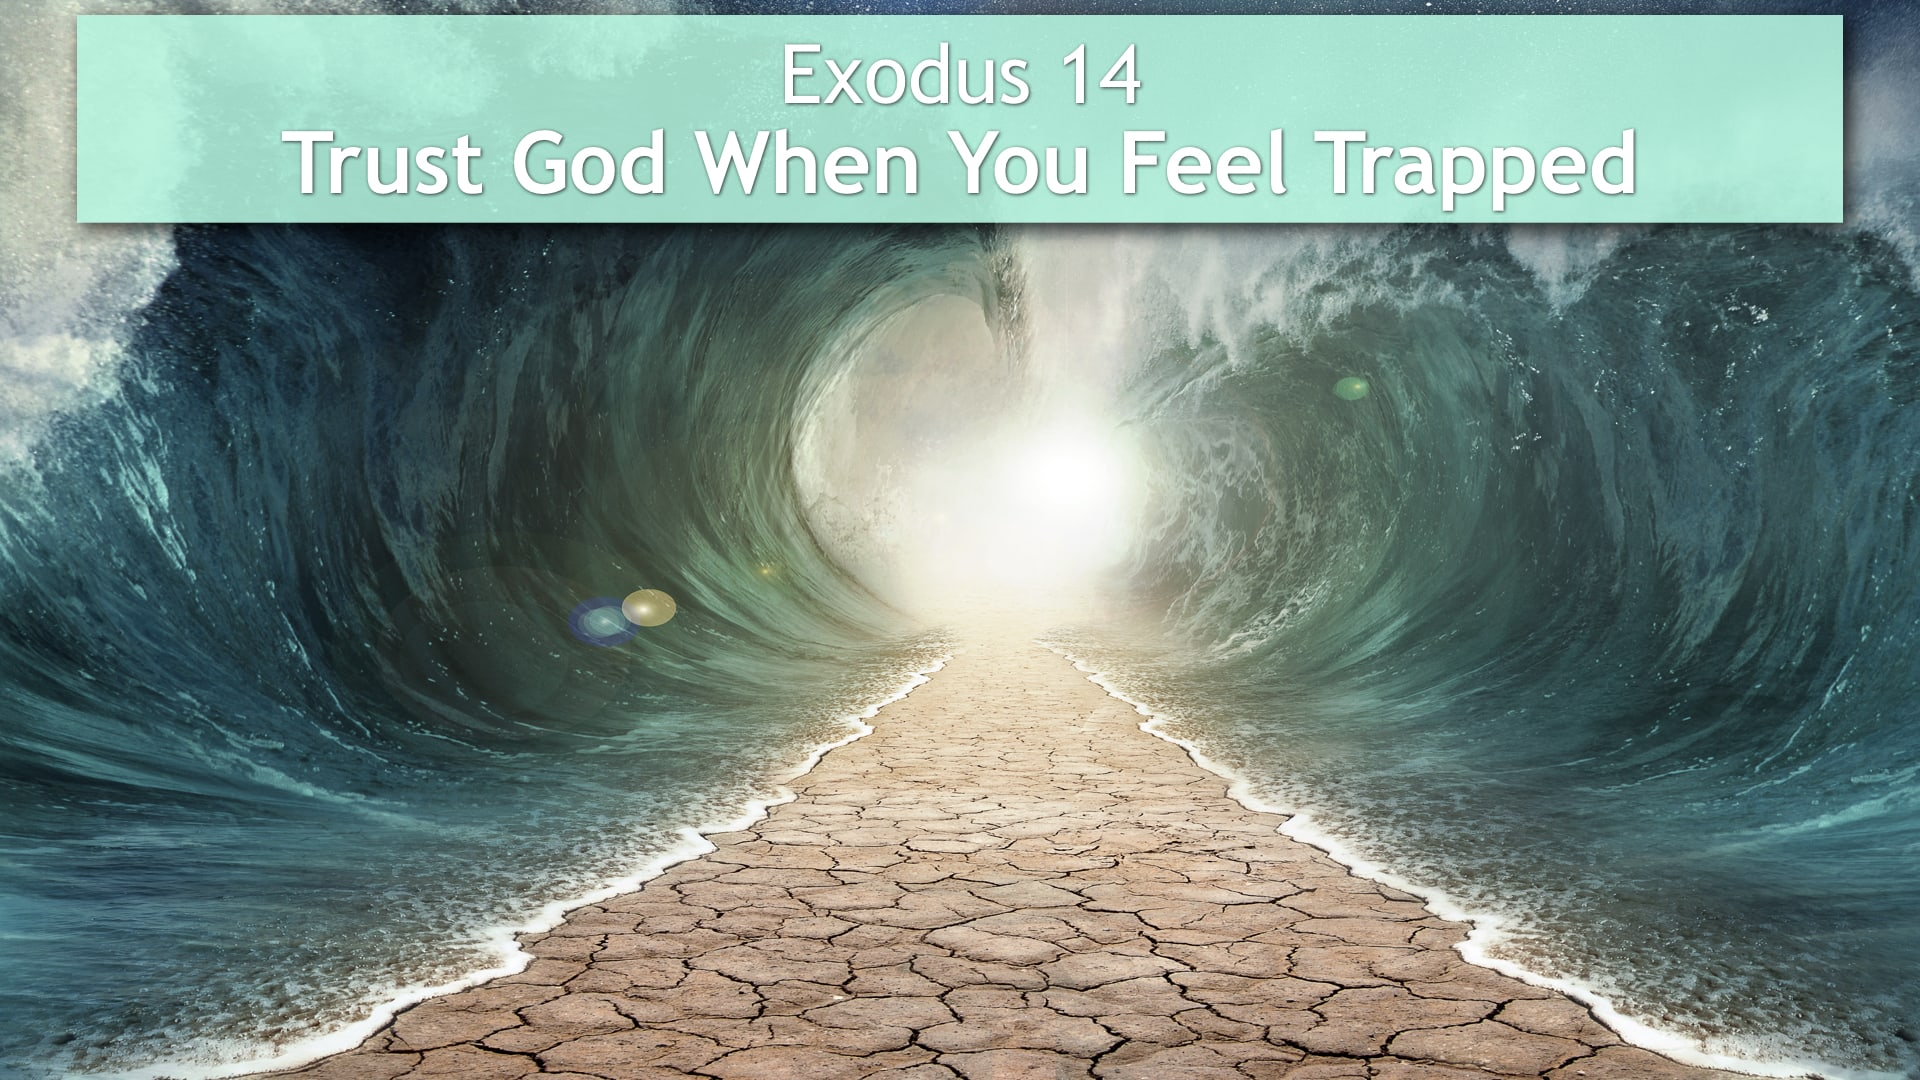 Exodus 14, Trust God When You Feel Trapped